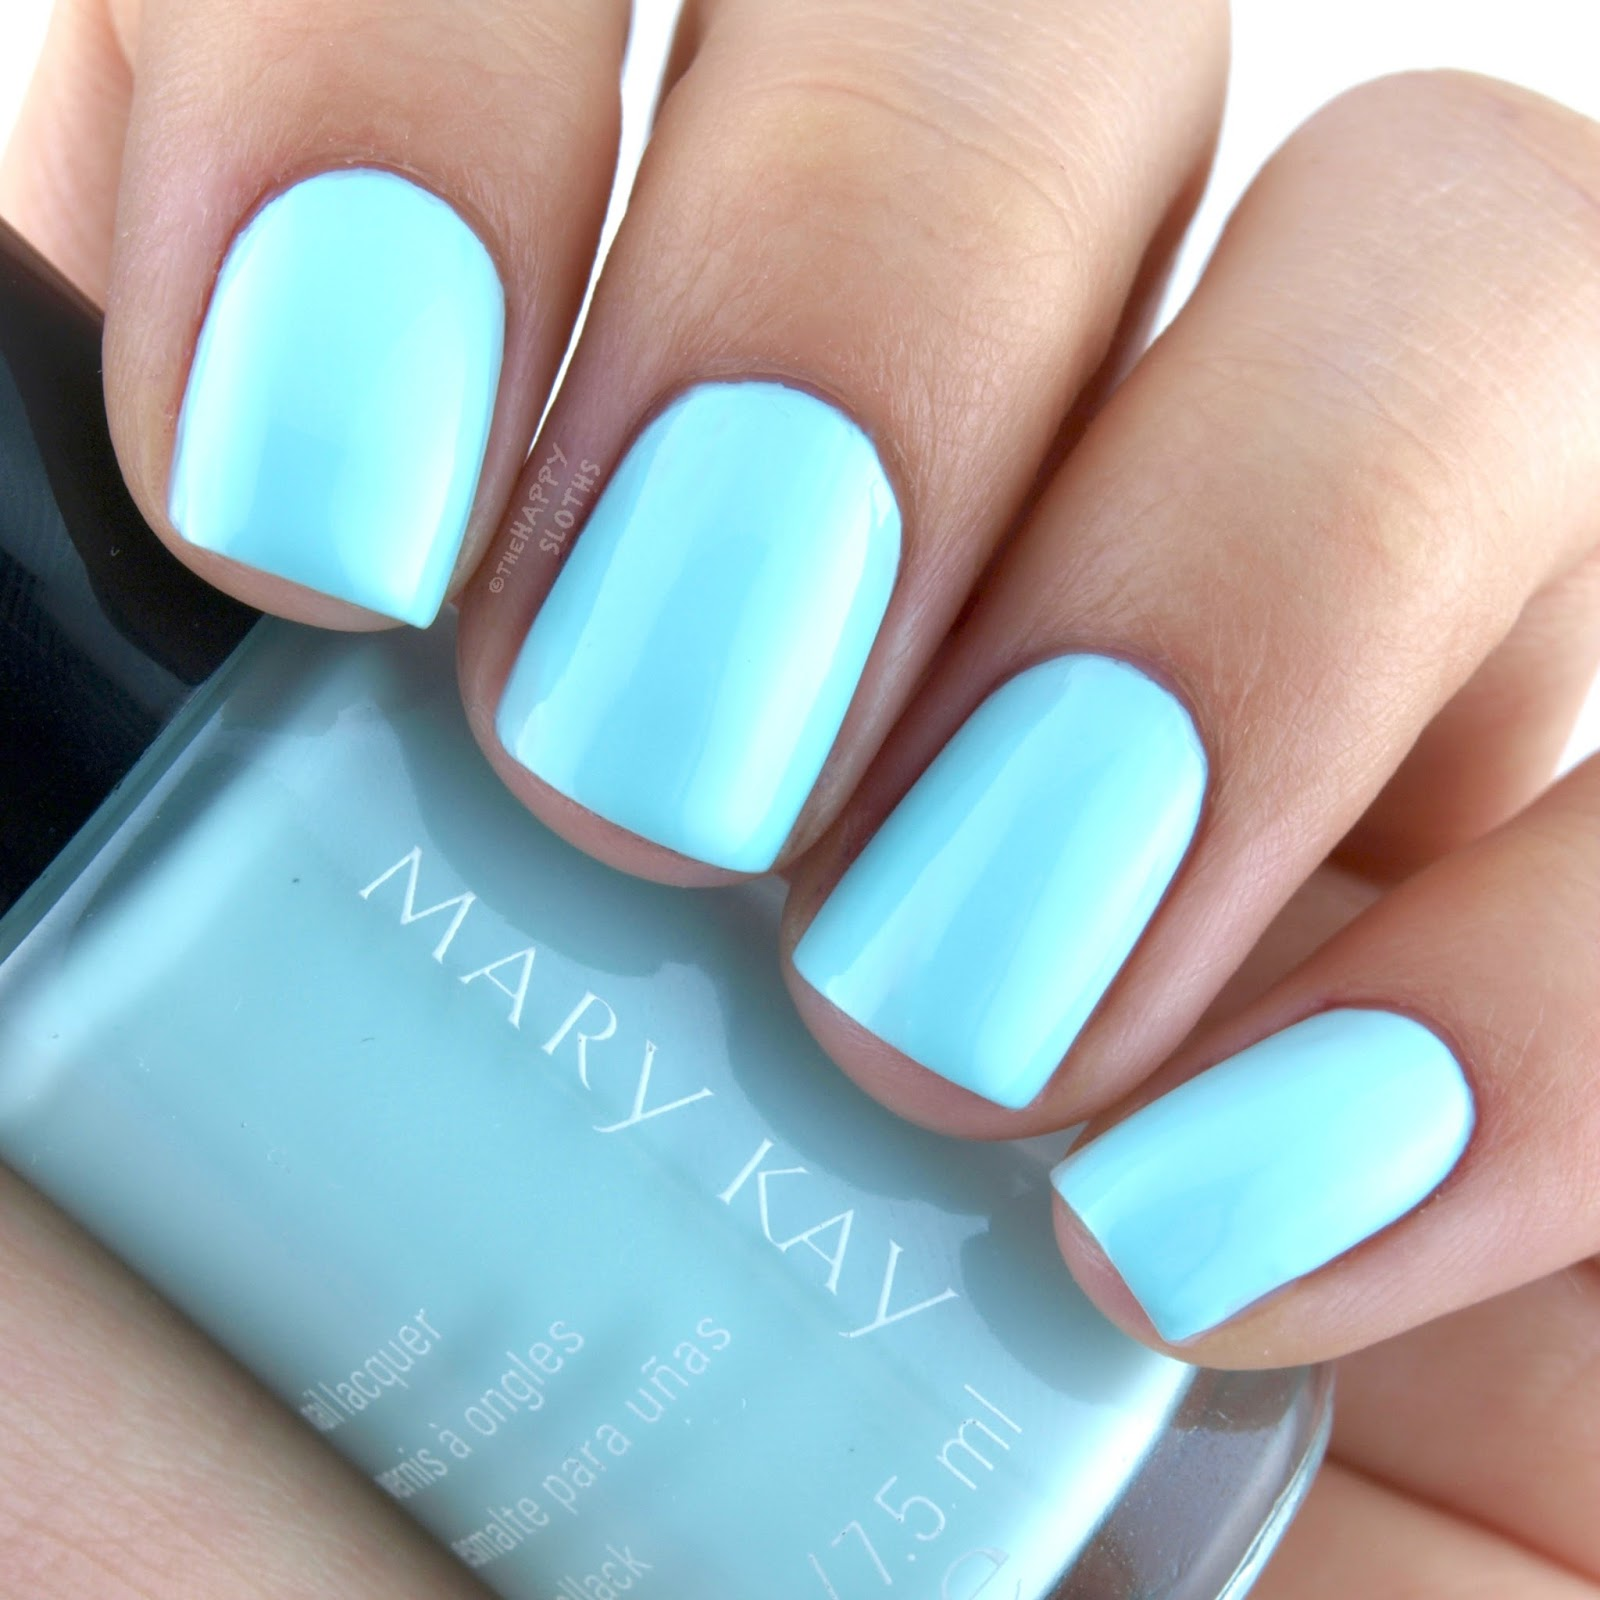 Mary Kay Spring 2017 Light, Reinvented Collection Nail Lacquer New Blue: Review and Swatches